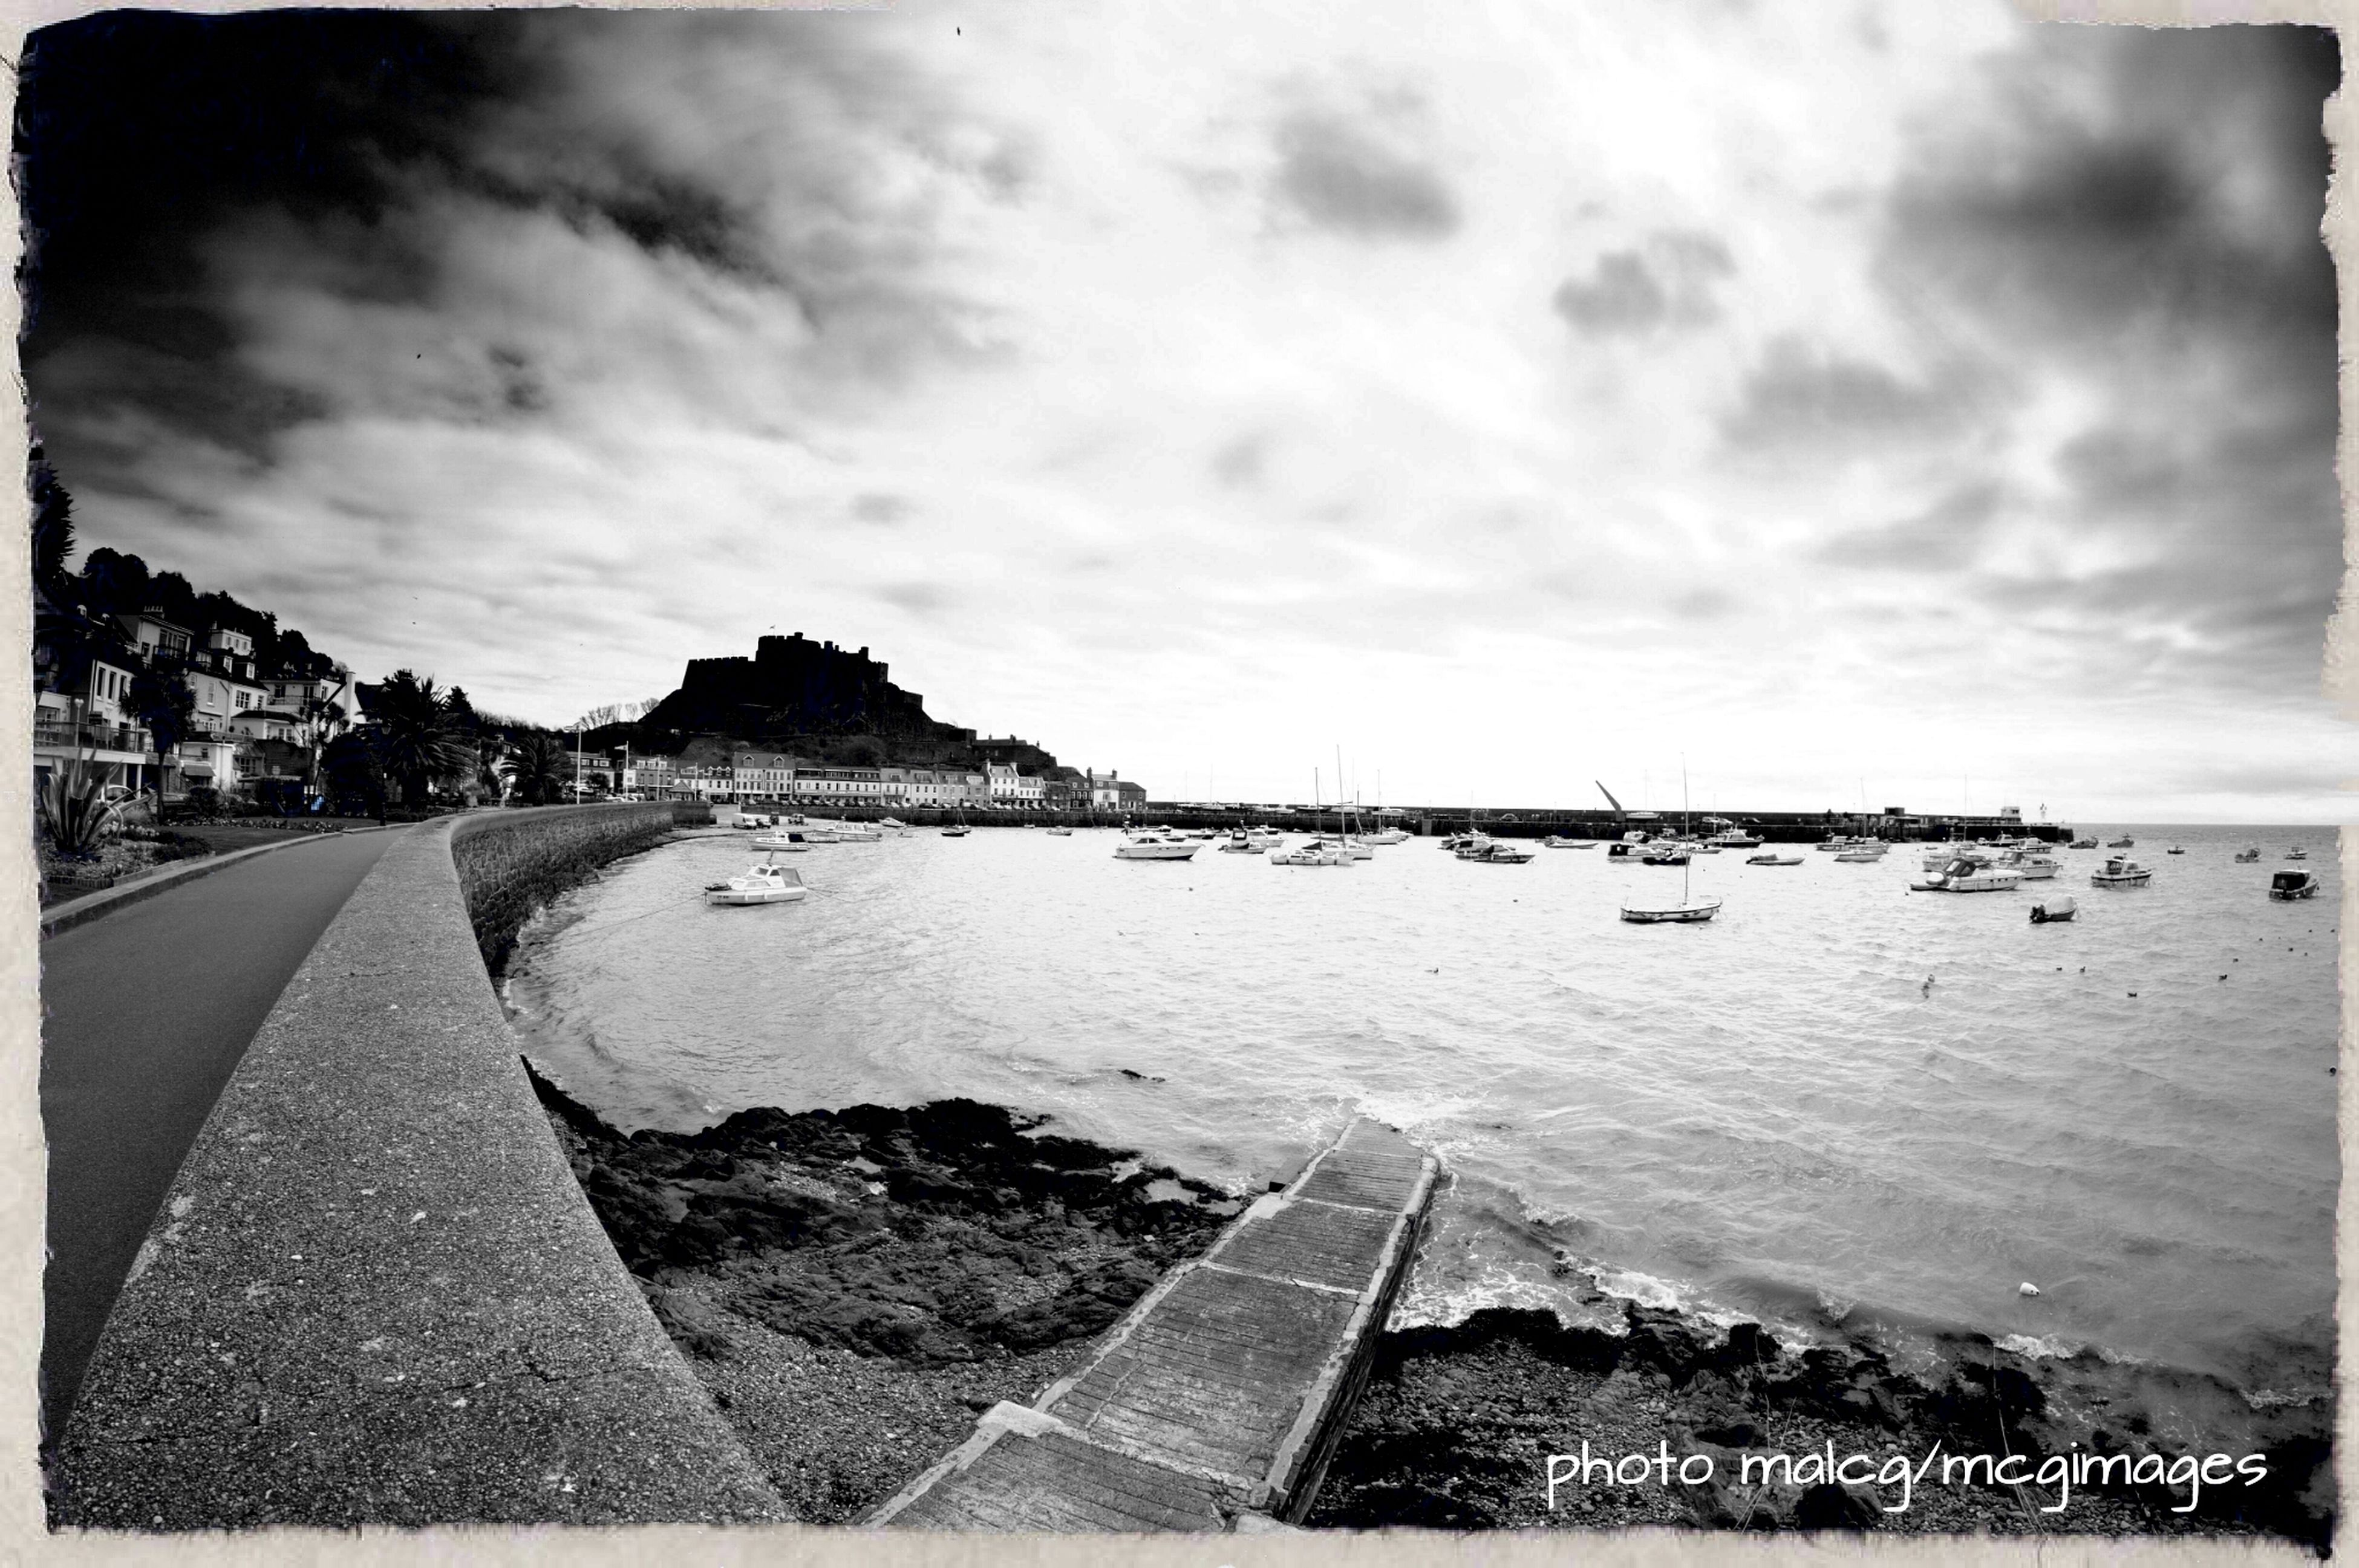 Gorey, with Mont Orgueil castle in the background, shot this morning.